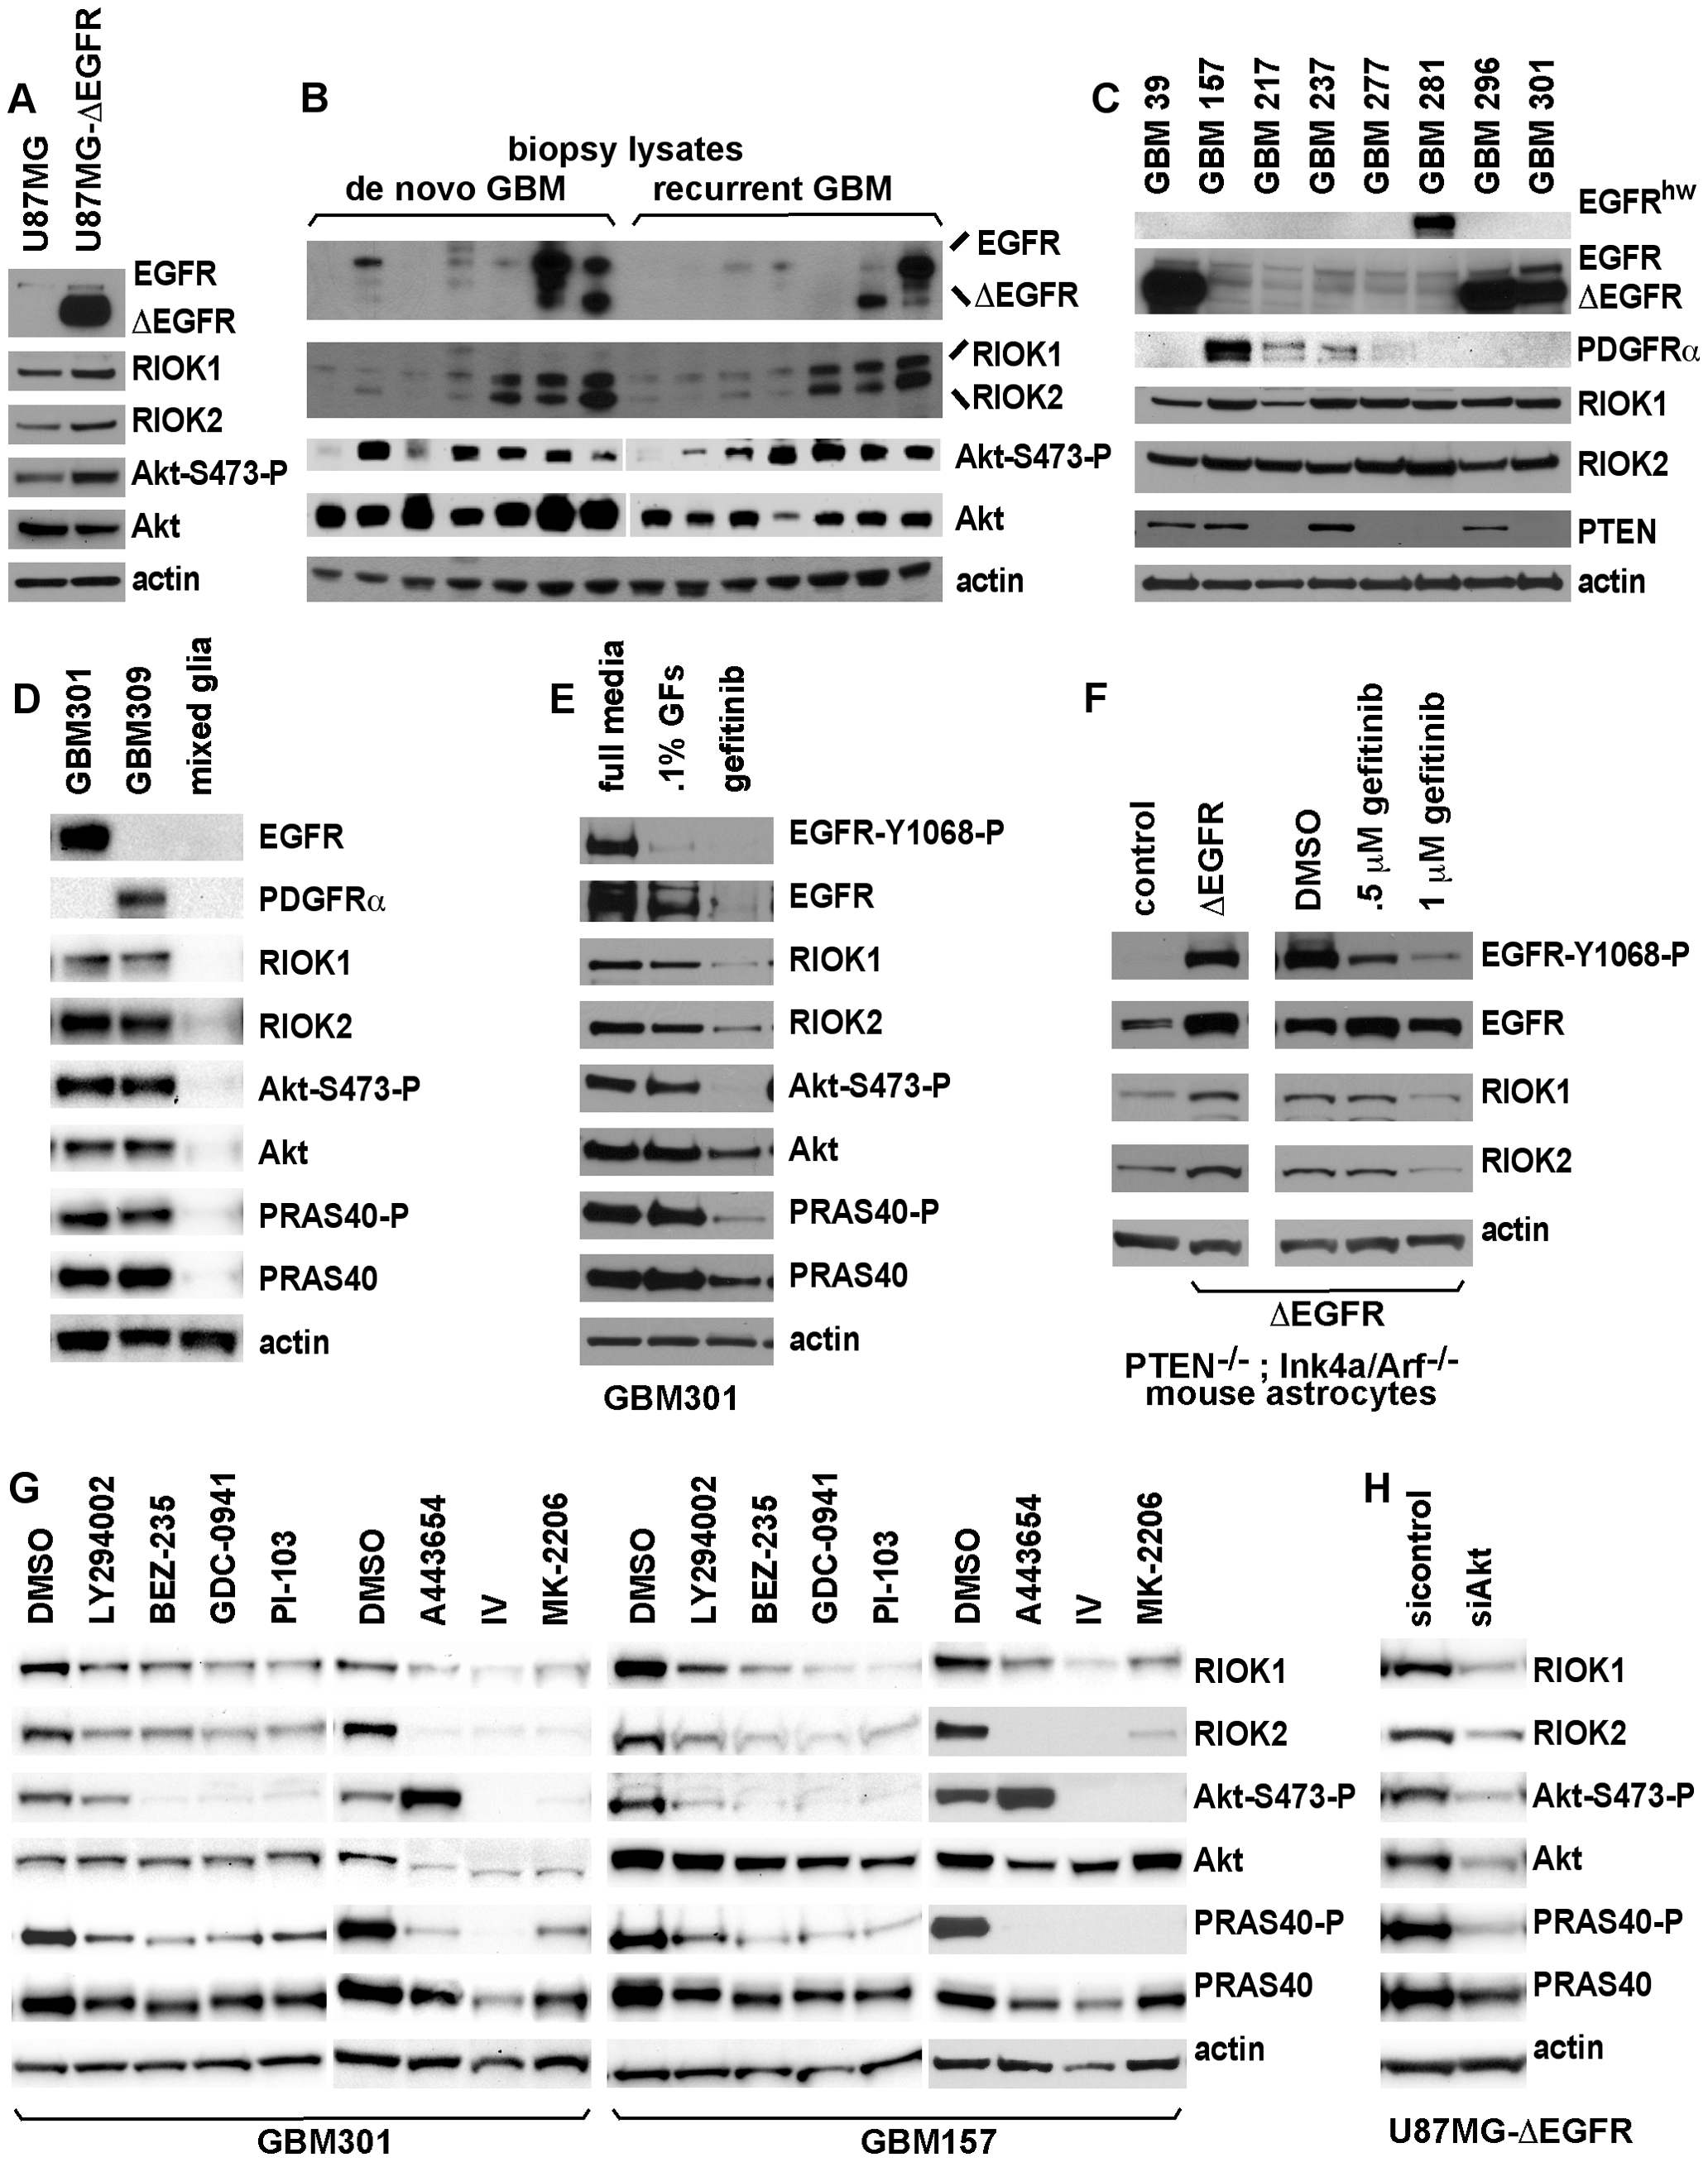 Expression of RIO kinases is associated with EGFR and Akt activity in GBM cells.